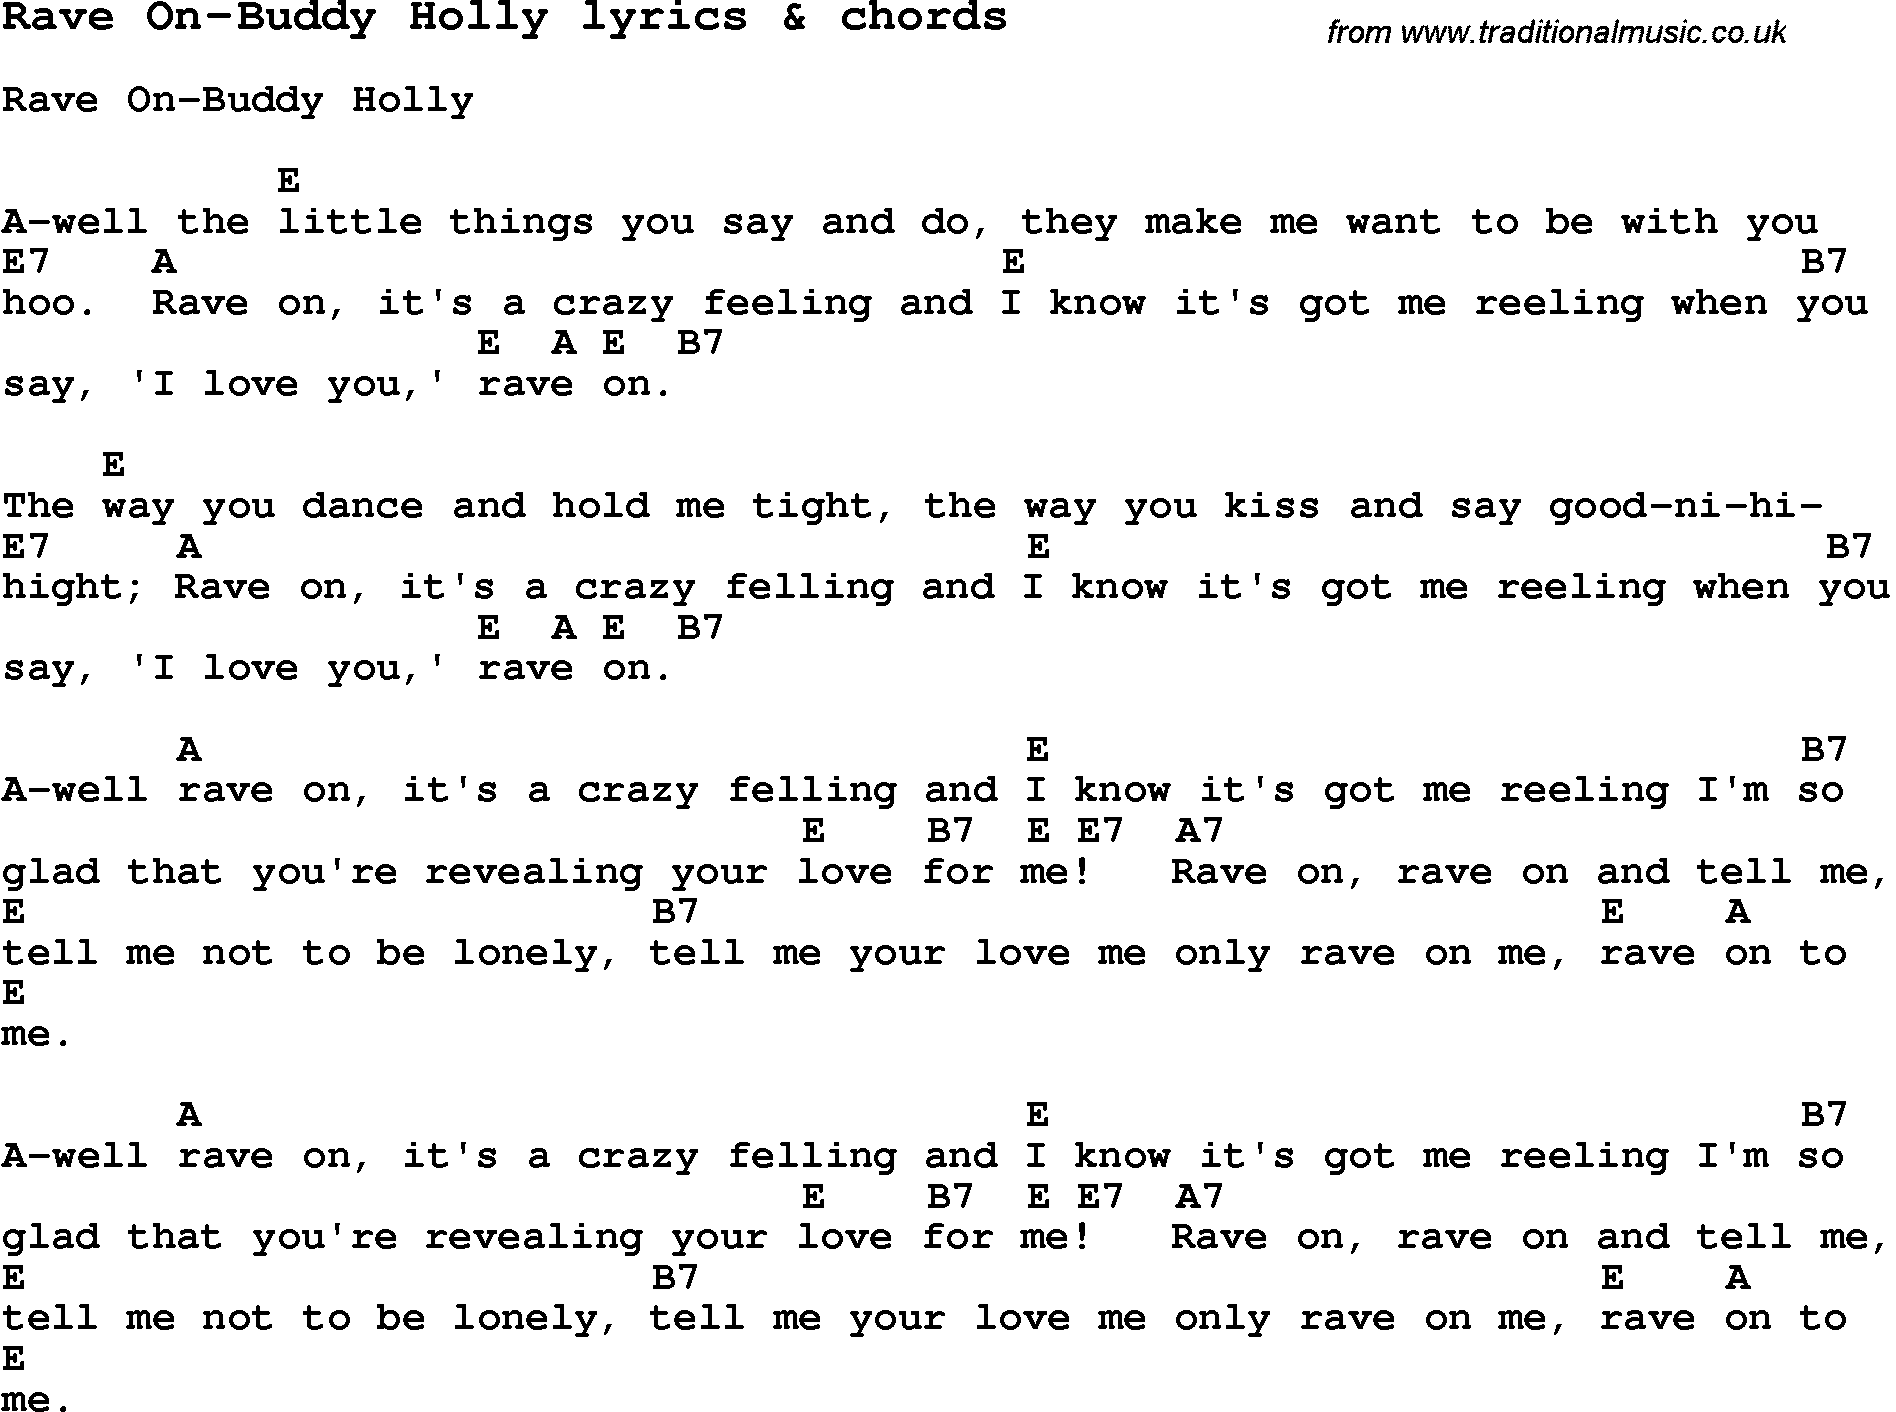 Images of buddy holly love song lyrics for rave on buddy holly love song rave on buddy holly with chords and lyrics for ukulele guitar banjo and other instruments hexwebz Gallery